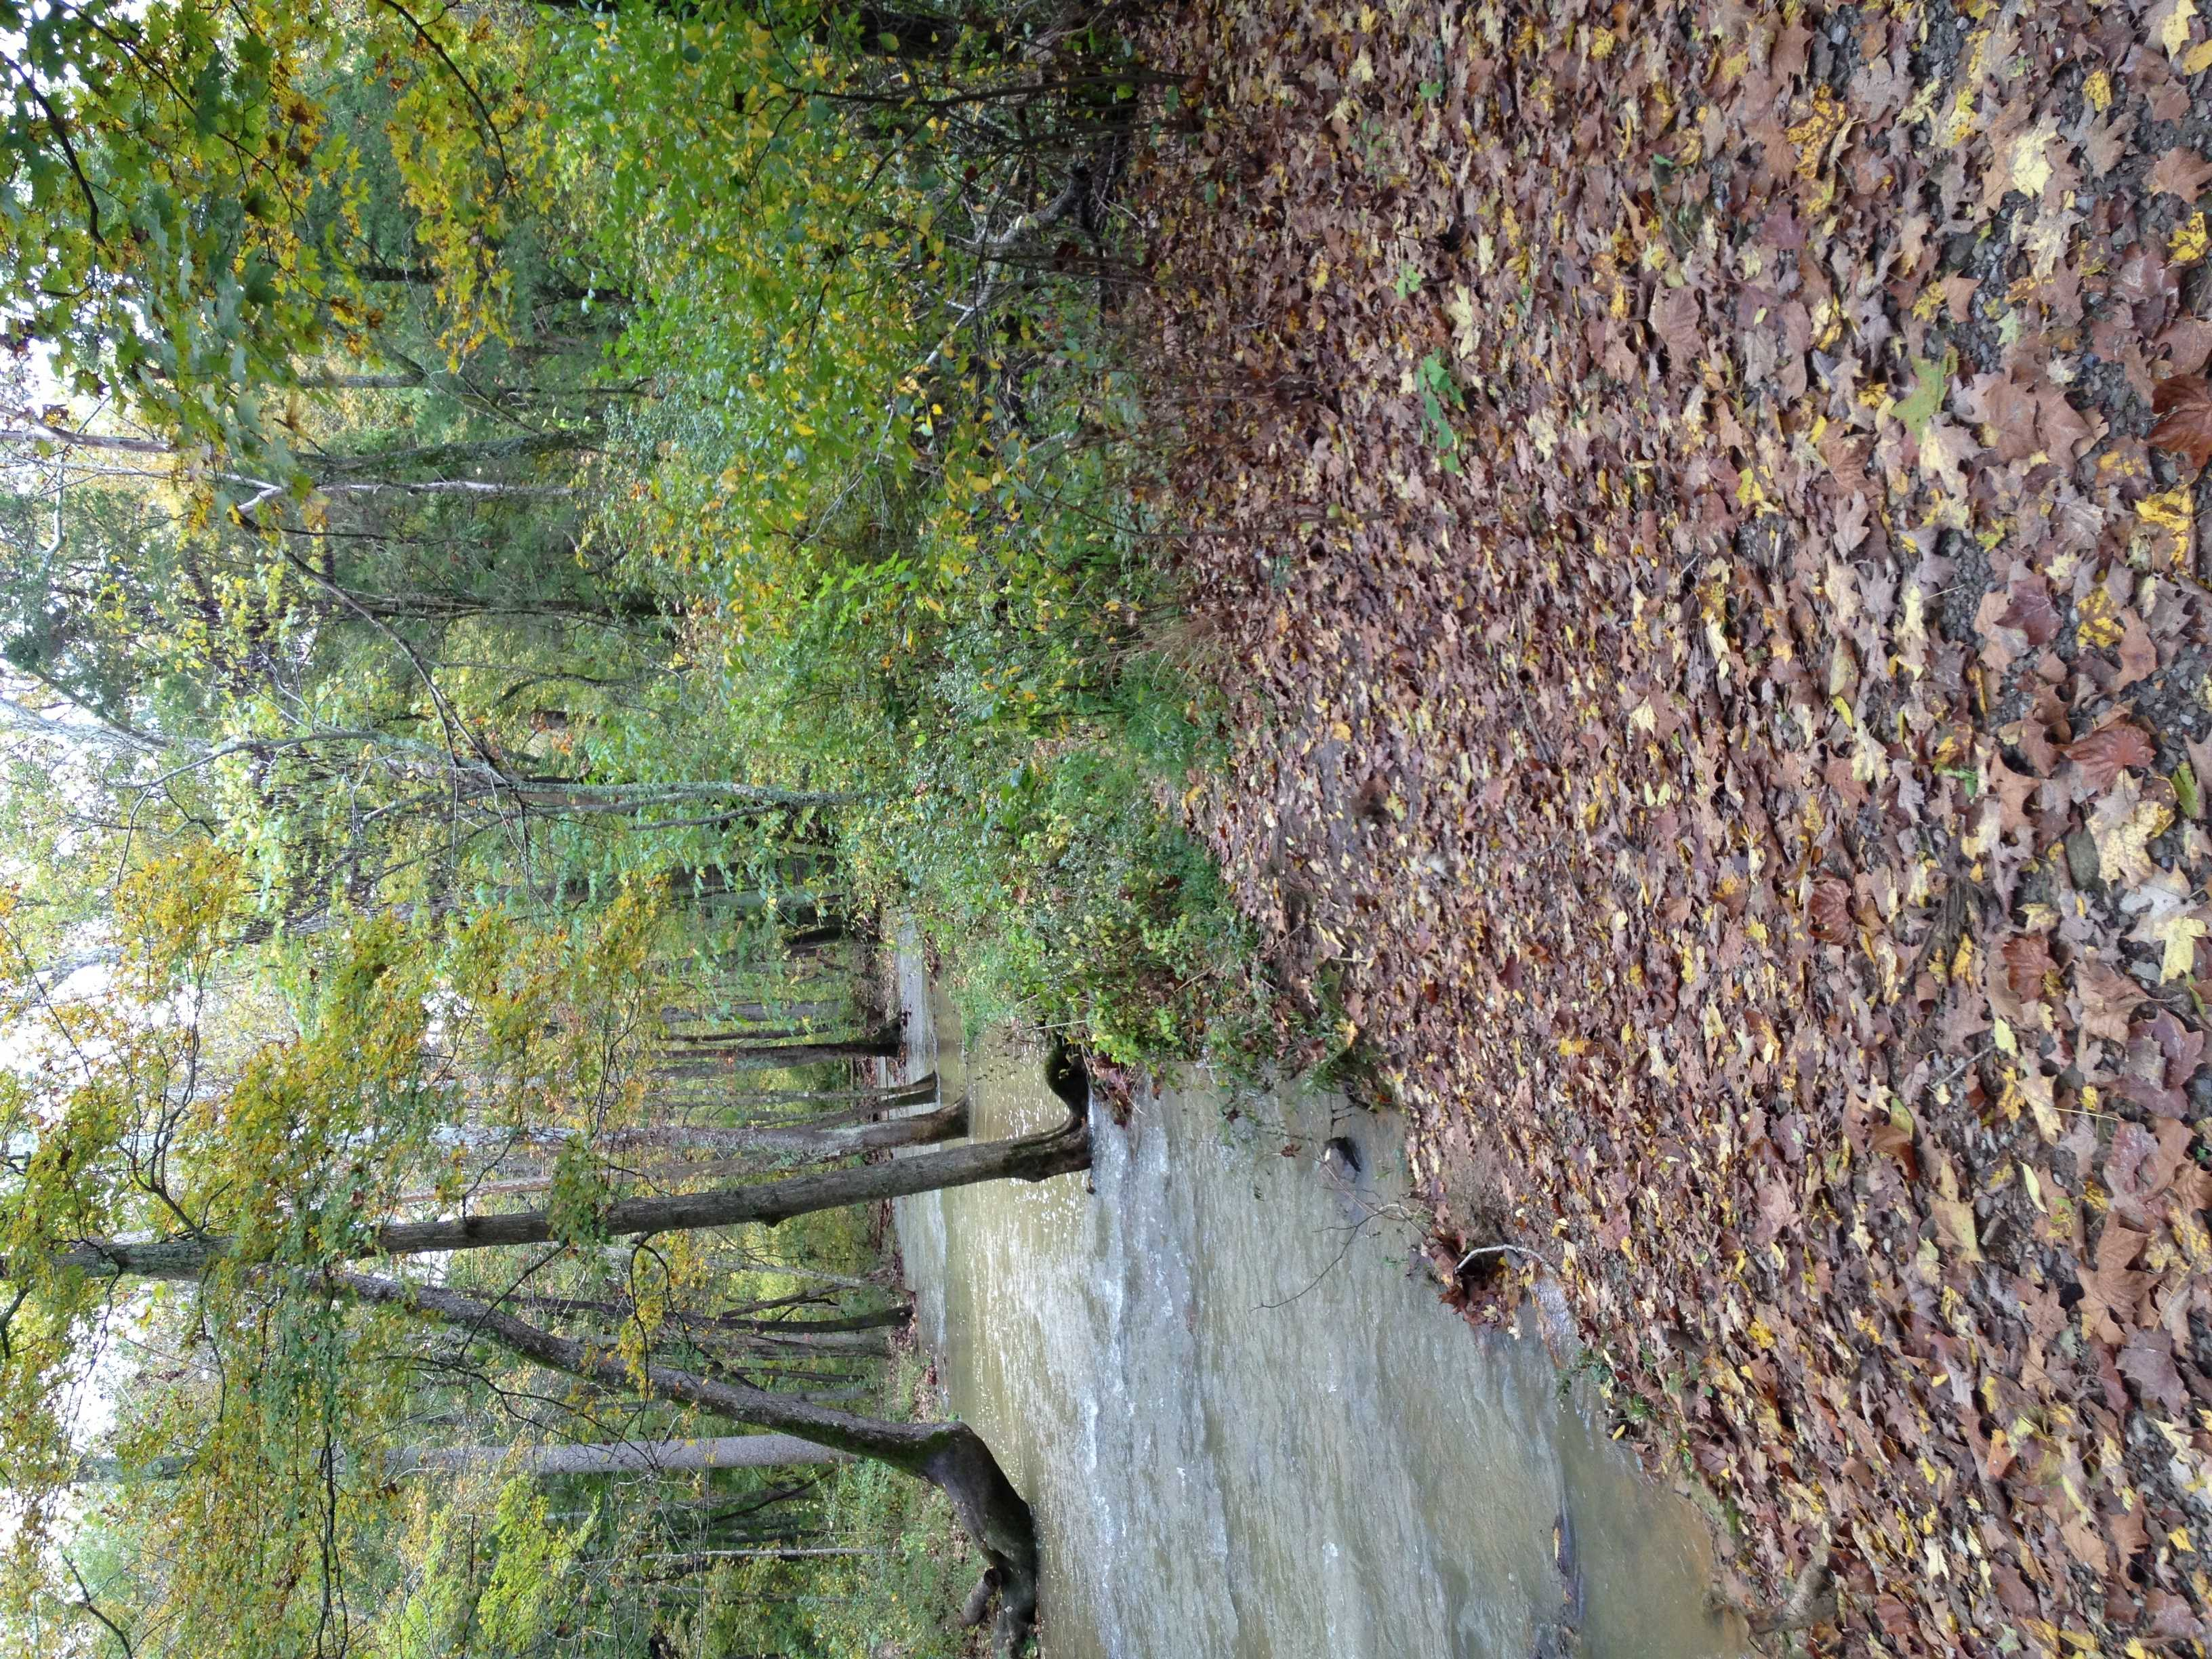 Early Fall Foliage Lifts of the Spirits of Both the Caregiver and the Caree